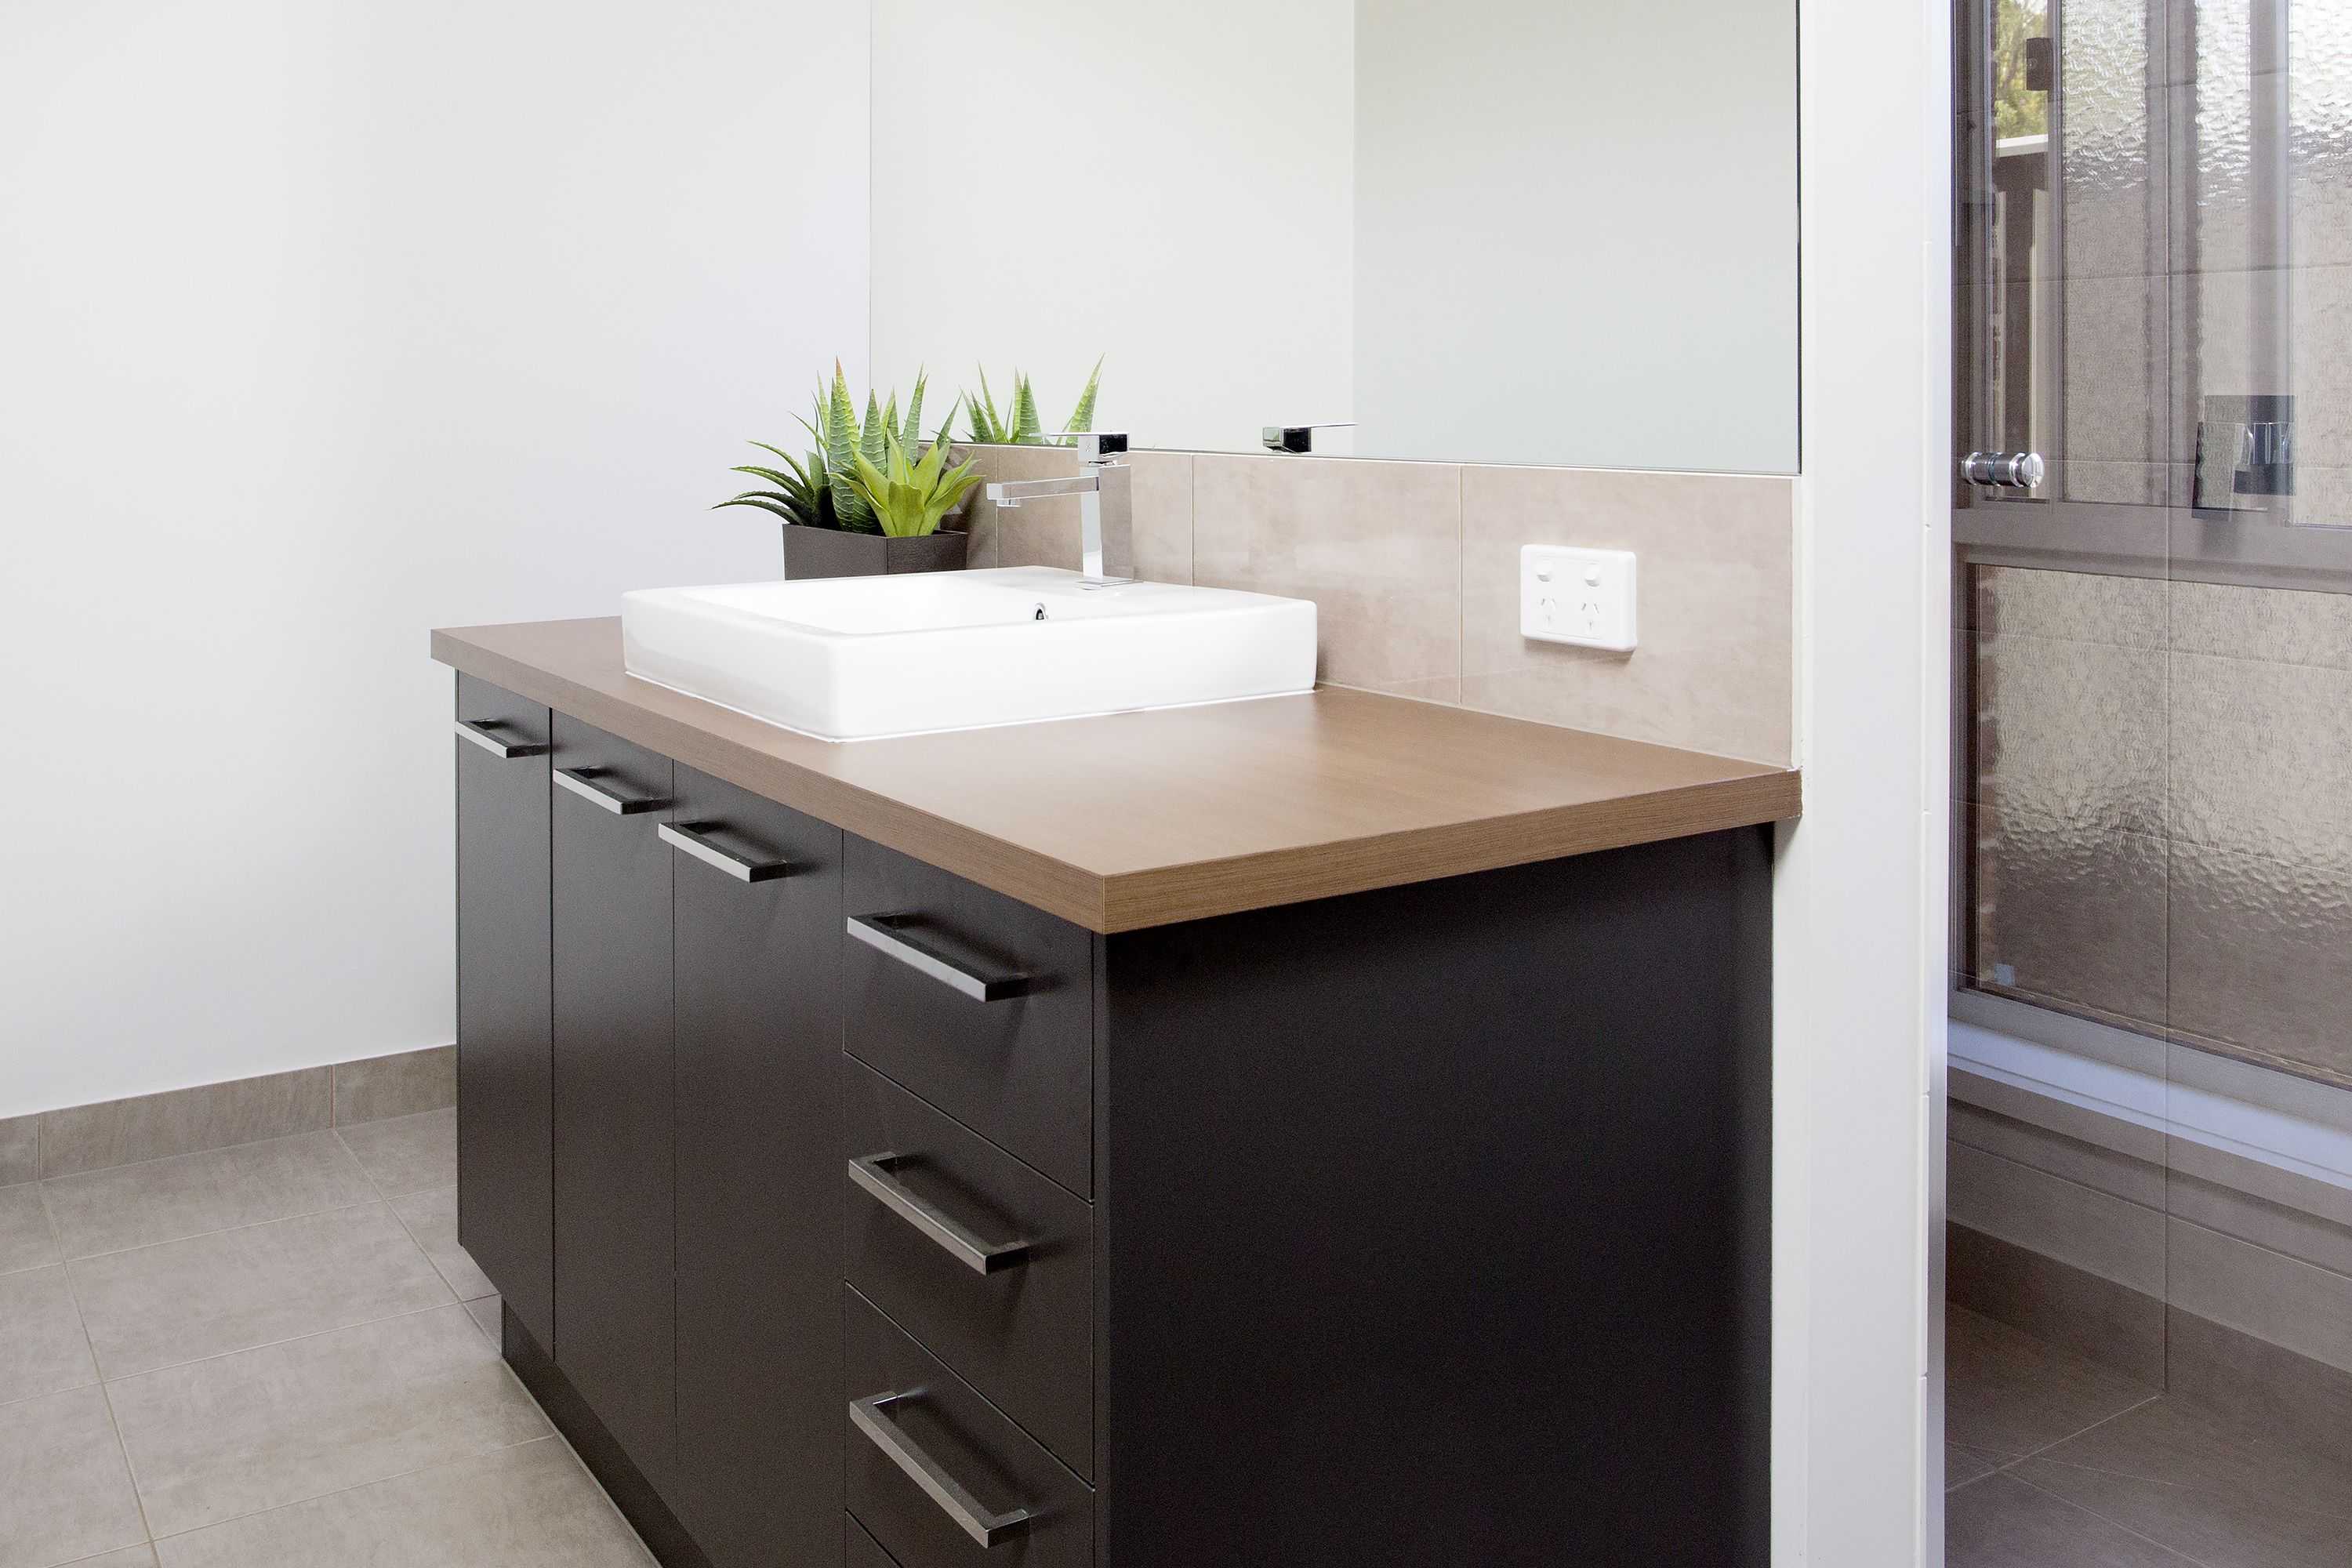 Bathroom Joinery ensuite vanity benchtop - cocoa spruce (matt finish)polytec